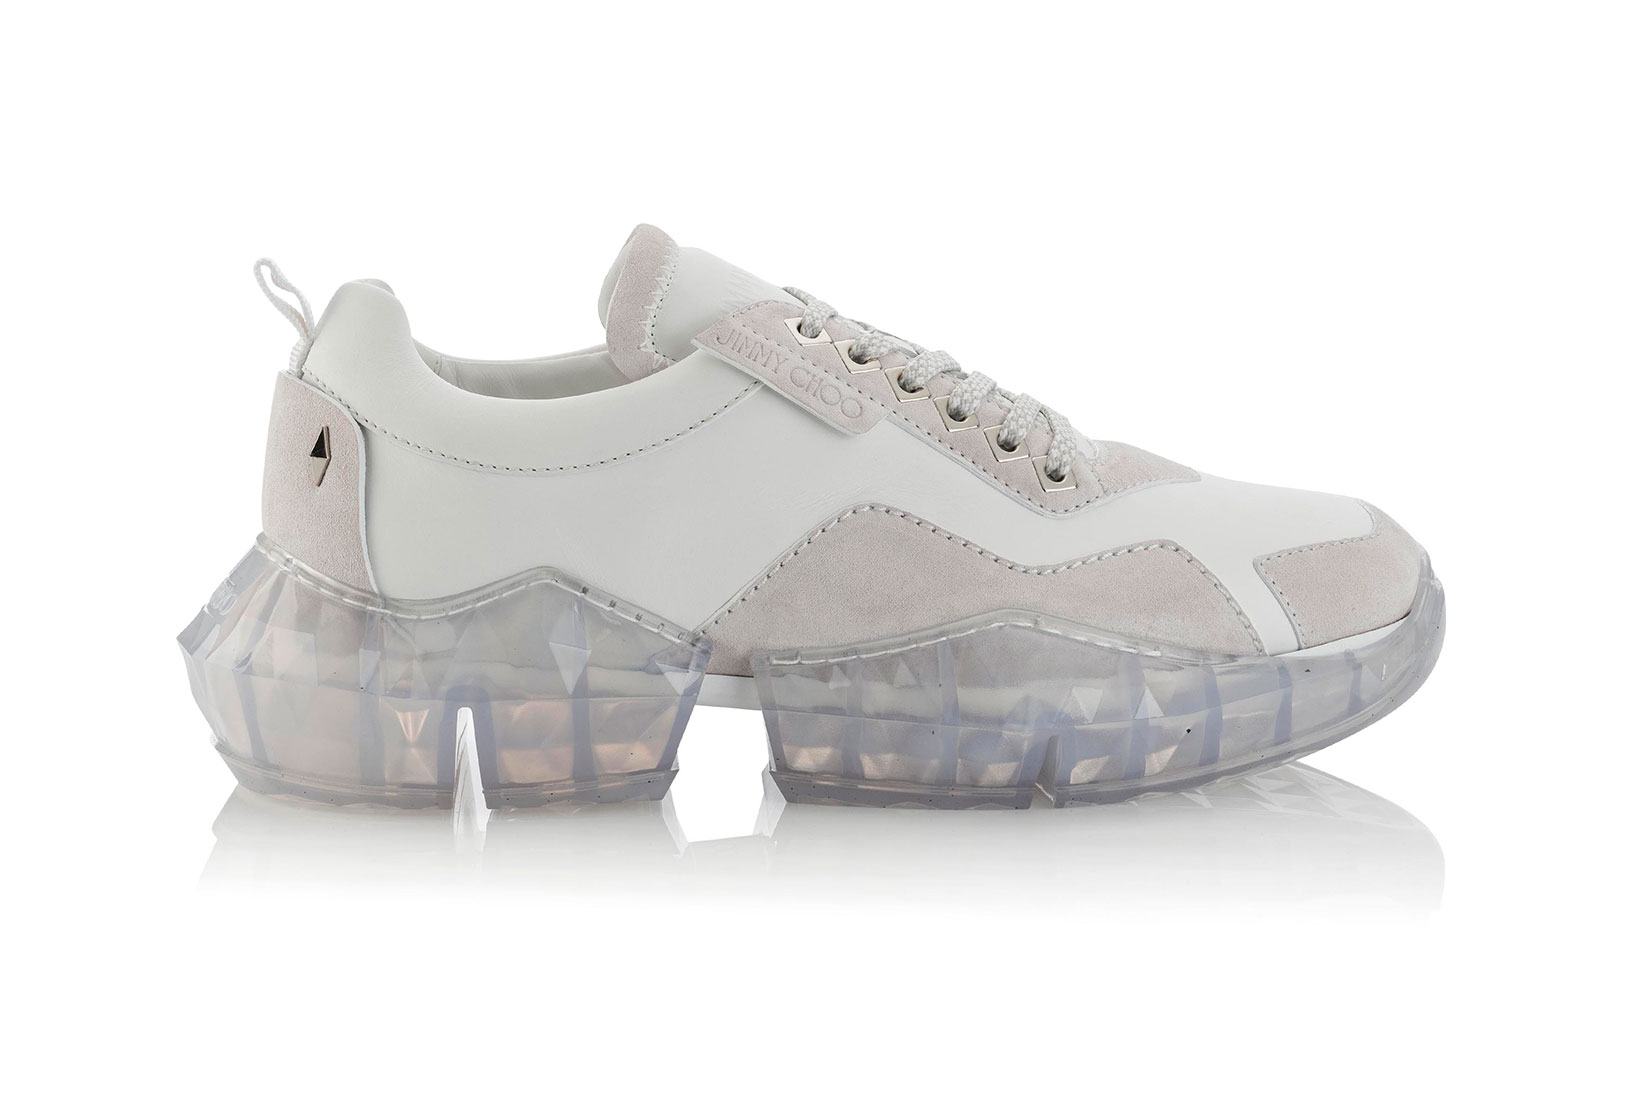 hot sale online bfb27 62b3d Jimmy Choo Drops It s Latest Collection of Menswear Sneakers   Hypebeast    Bloglovin